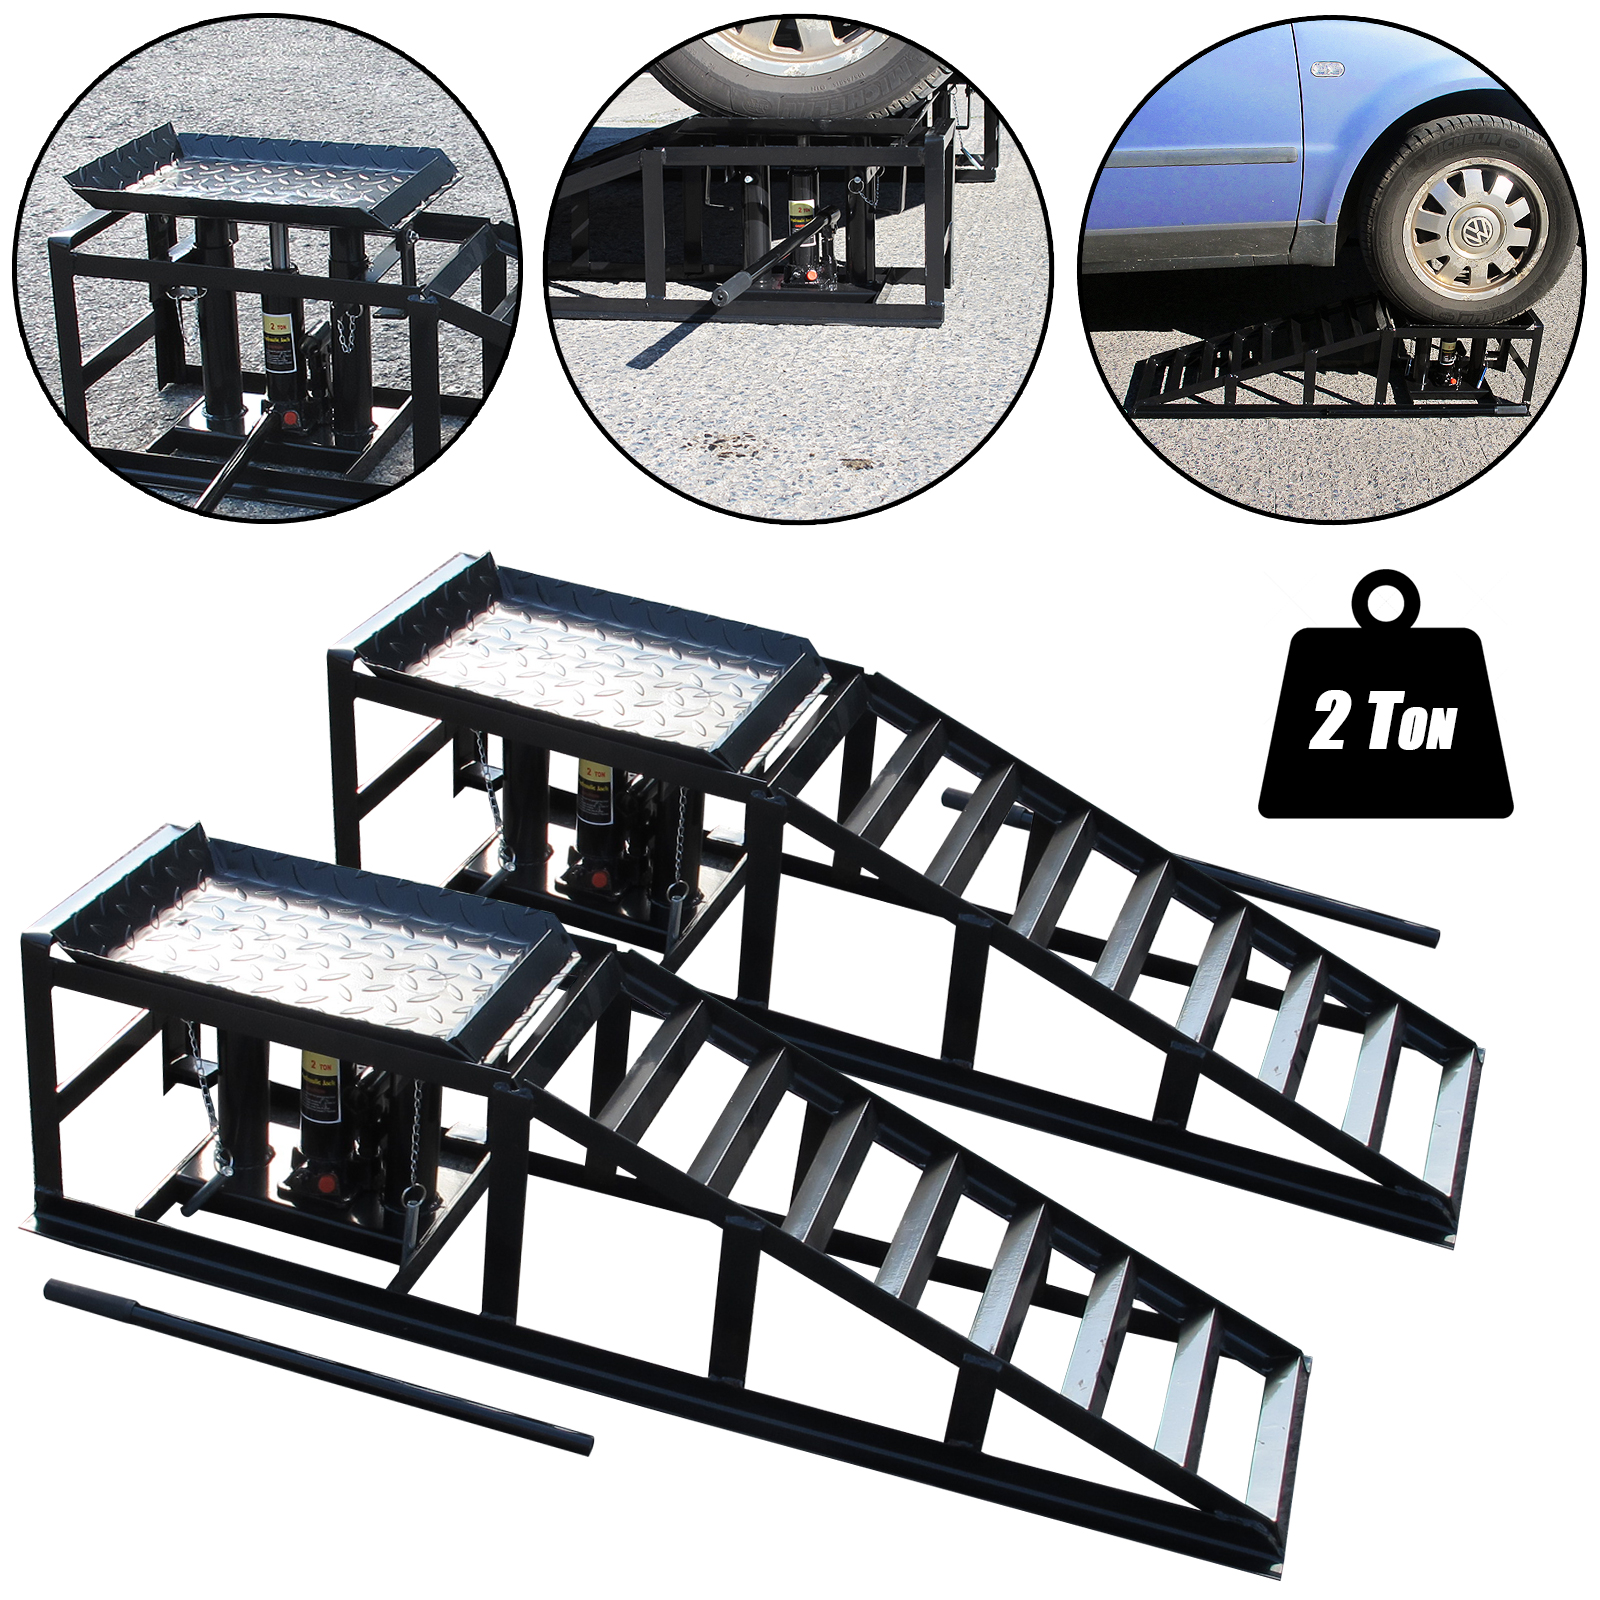 Domestic Garage Car Lift Details About Tech7 Vehicle Car Ramp Lift 2 Ton Hydraulic Jack Garage Heavy Duty Black Pair